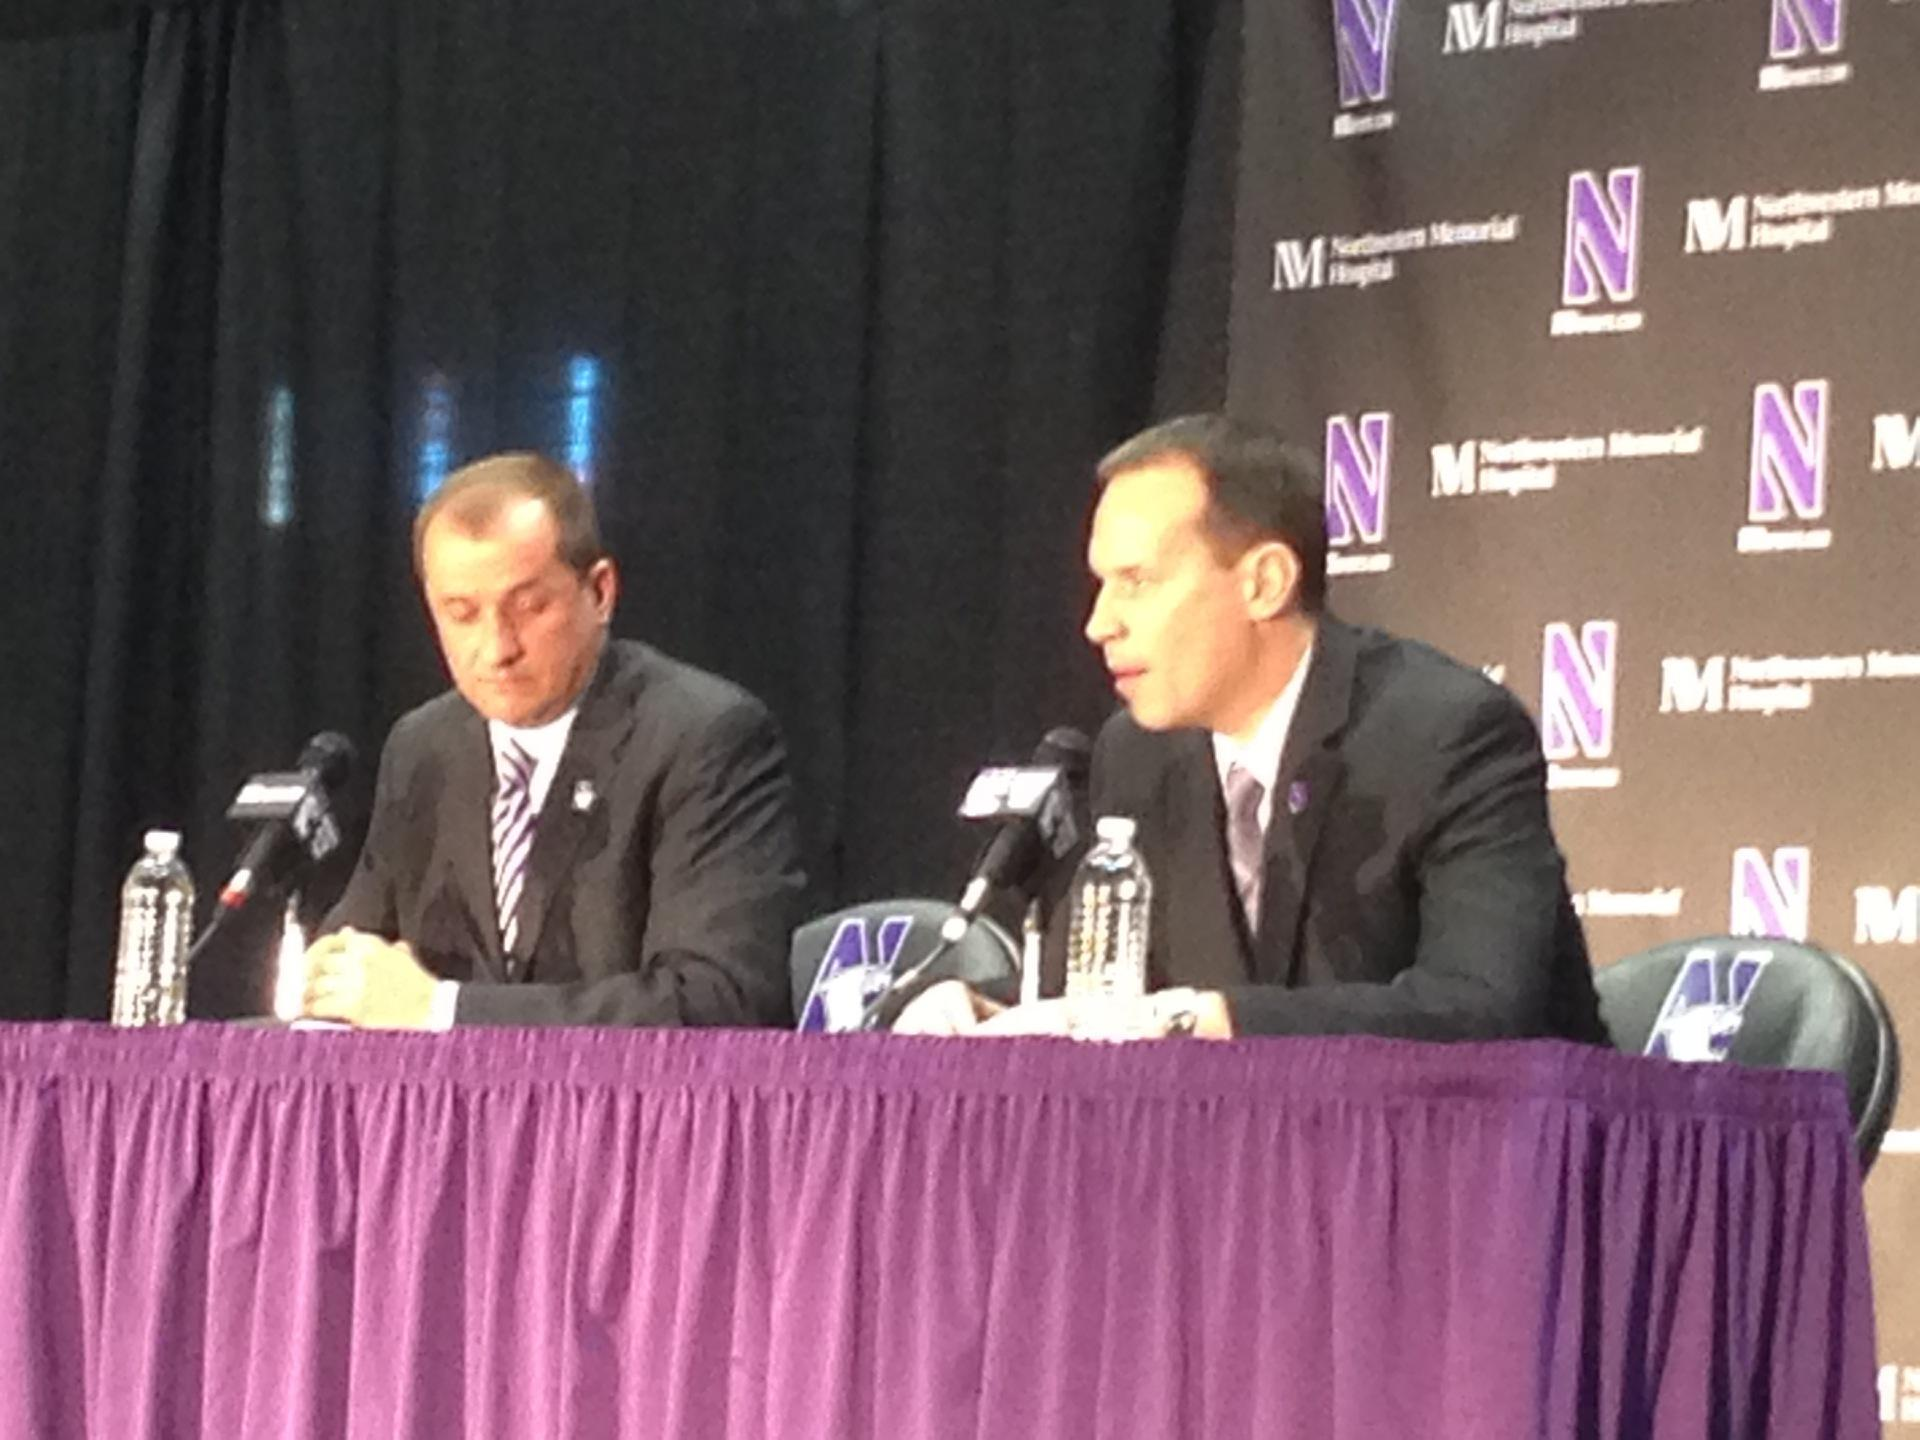 New head basketball coach Chris Collins (right) met with reporters for about 30 minutes this morning. Collins expressed his enthusiasm for the new job, calling it a